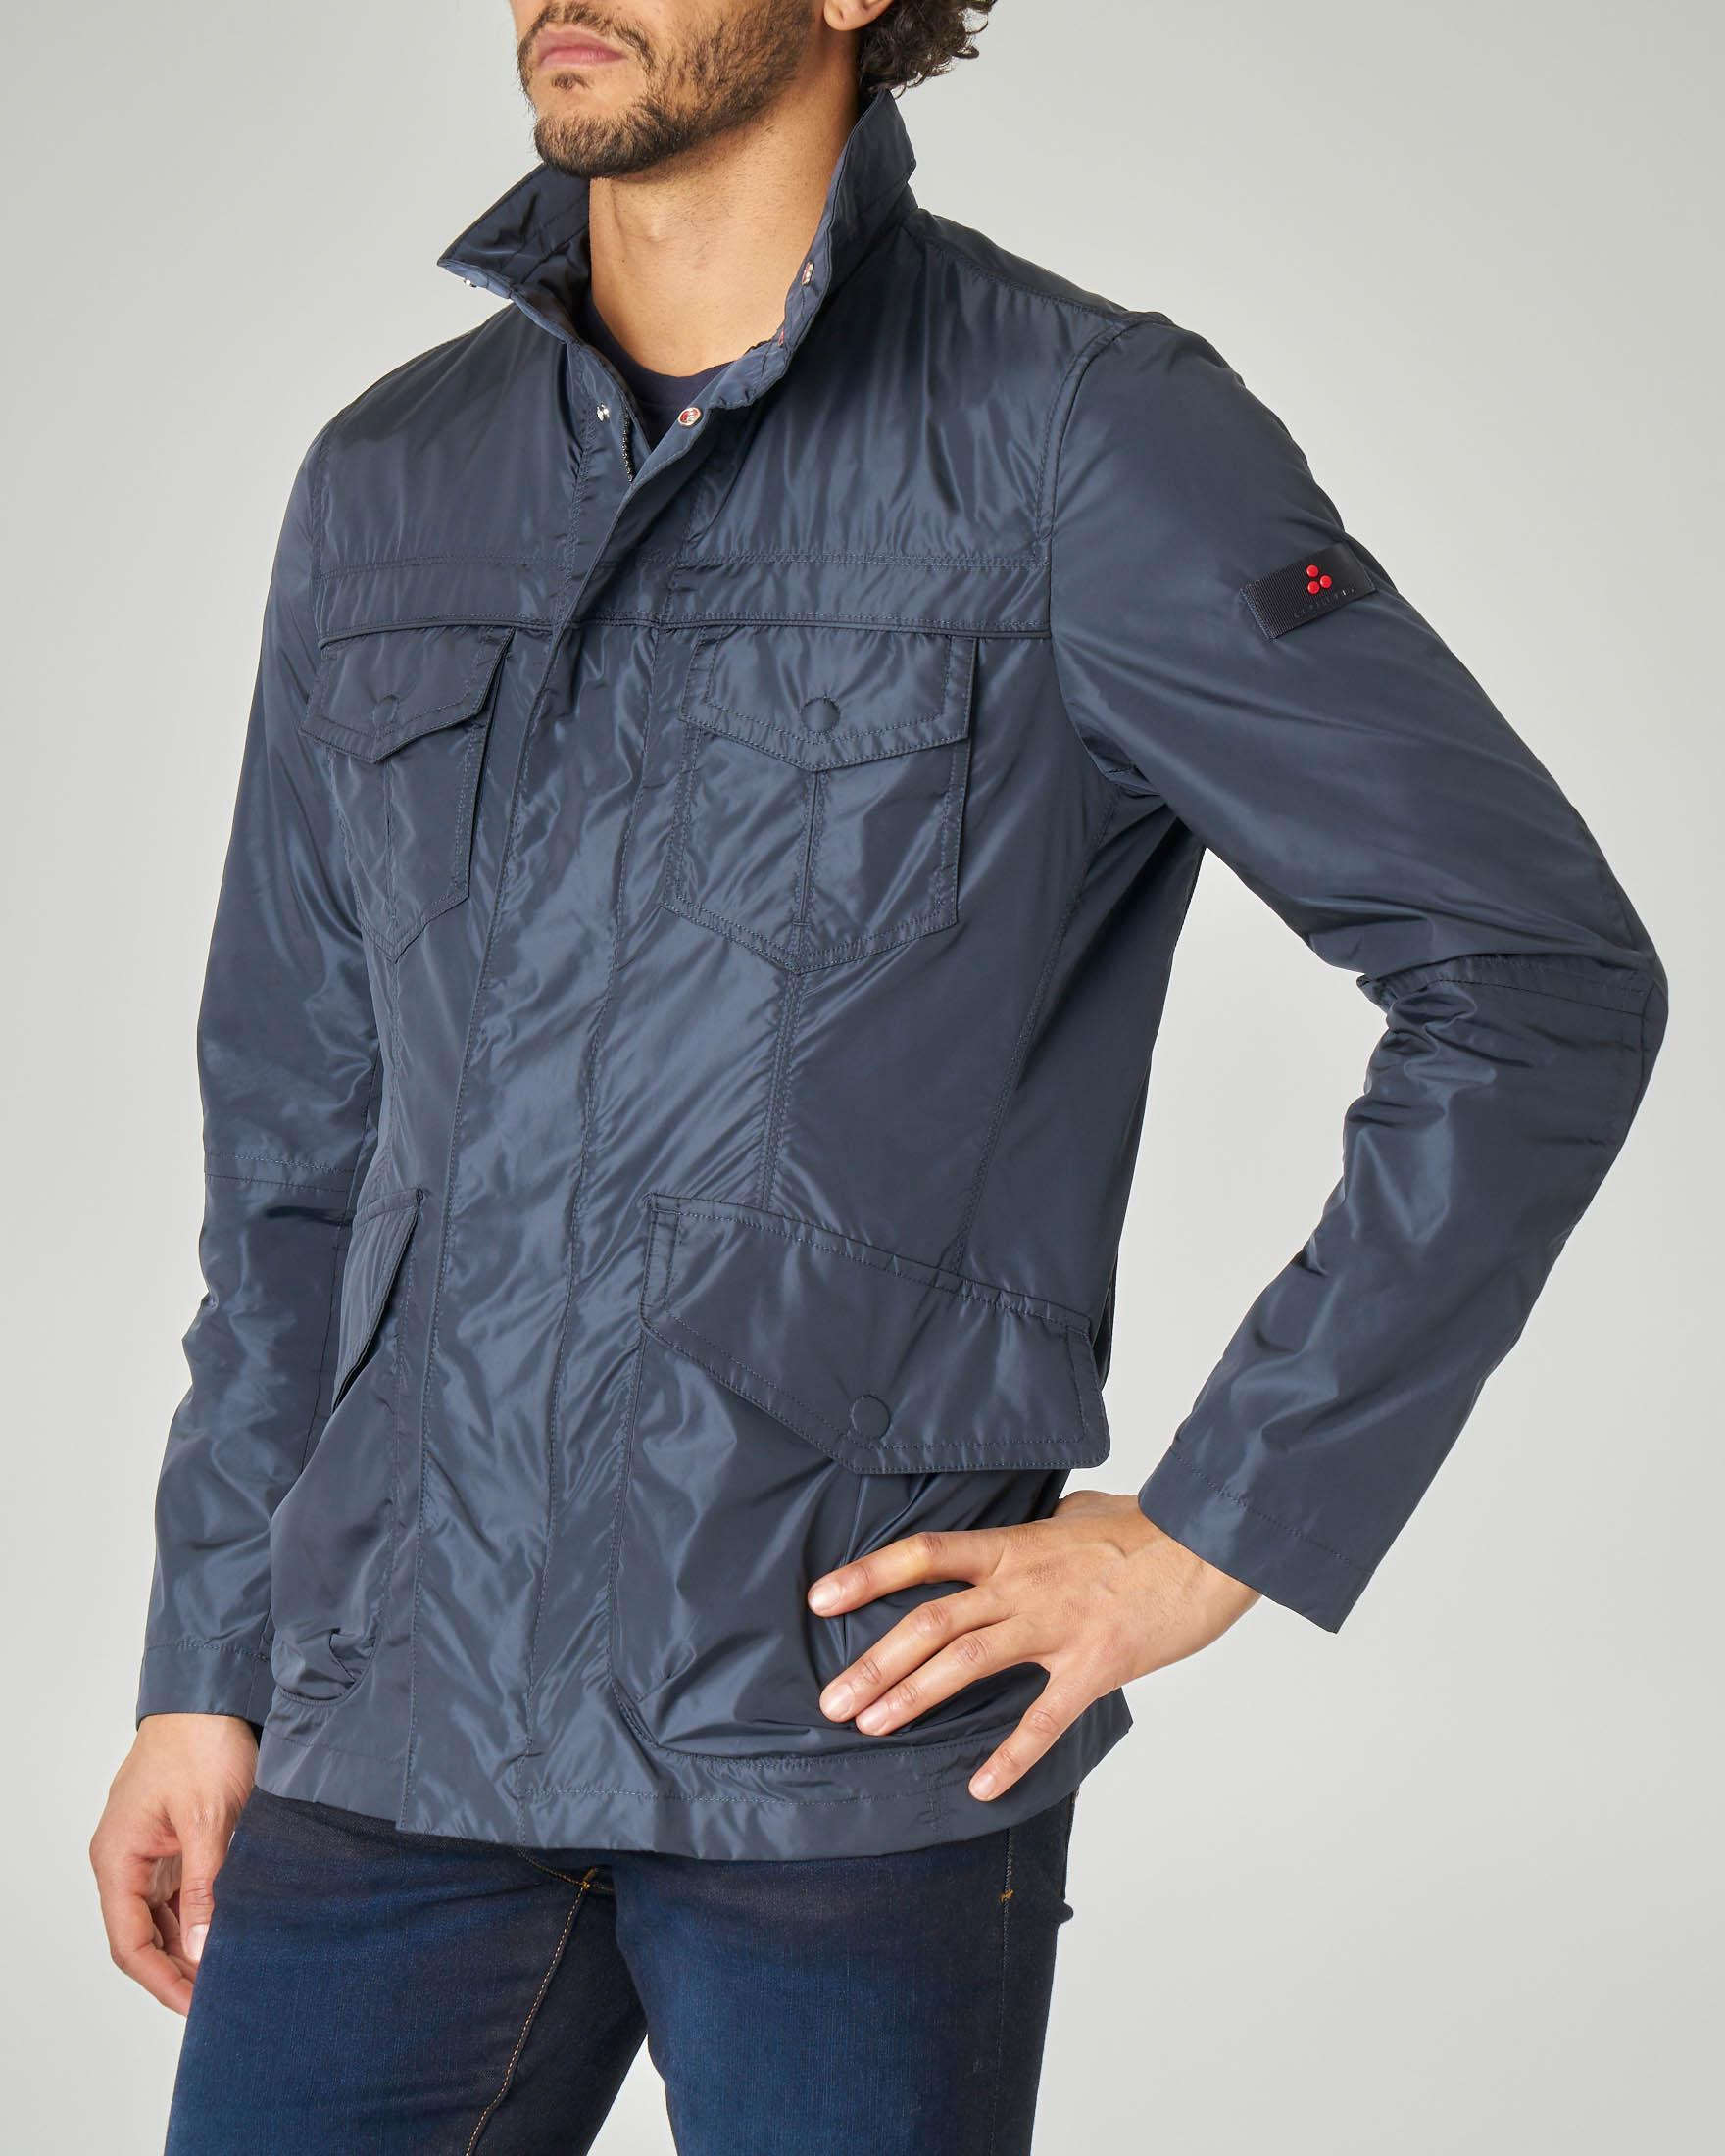 Field jacket blu in nylon cangiante